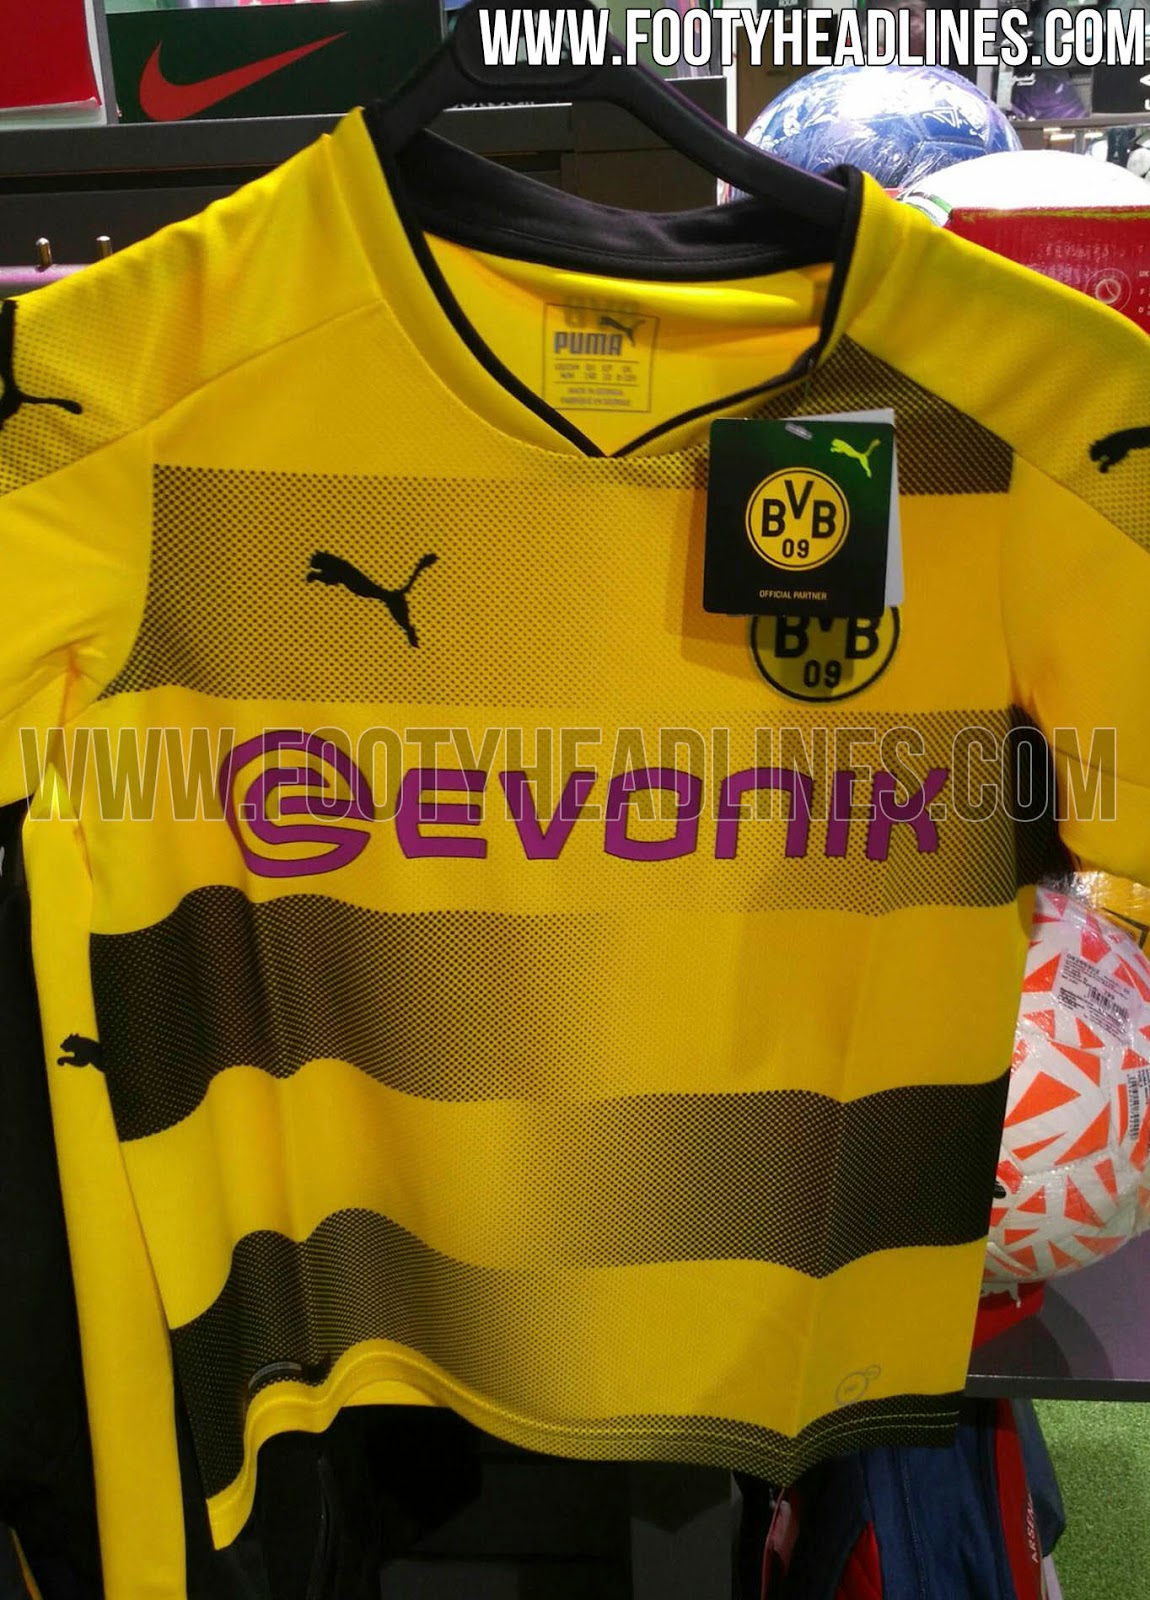 das borussia dortmund 17 18 trikot wurde am 18 mai. Black Bedroom Furniture Sets. Home Design Ideas